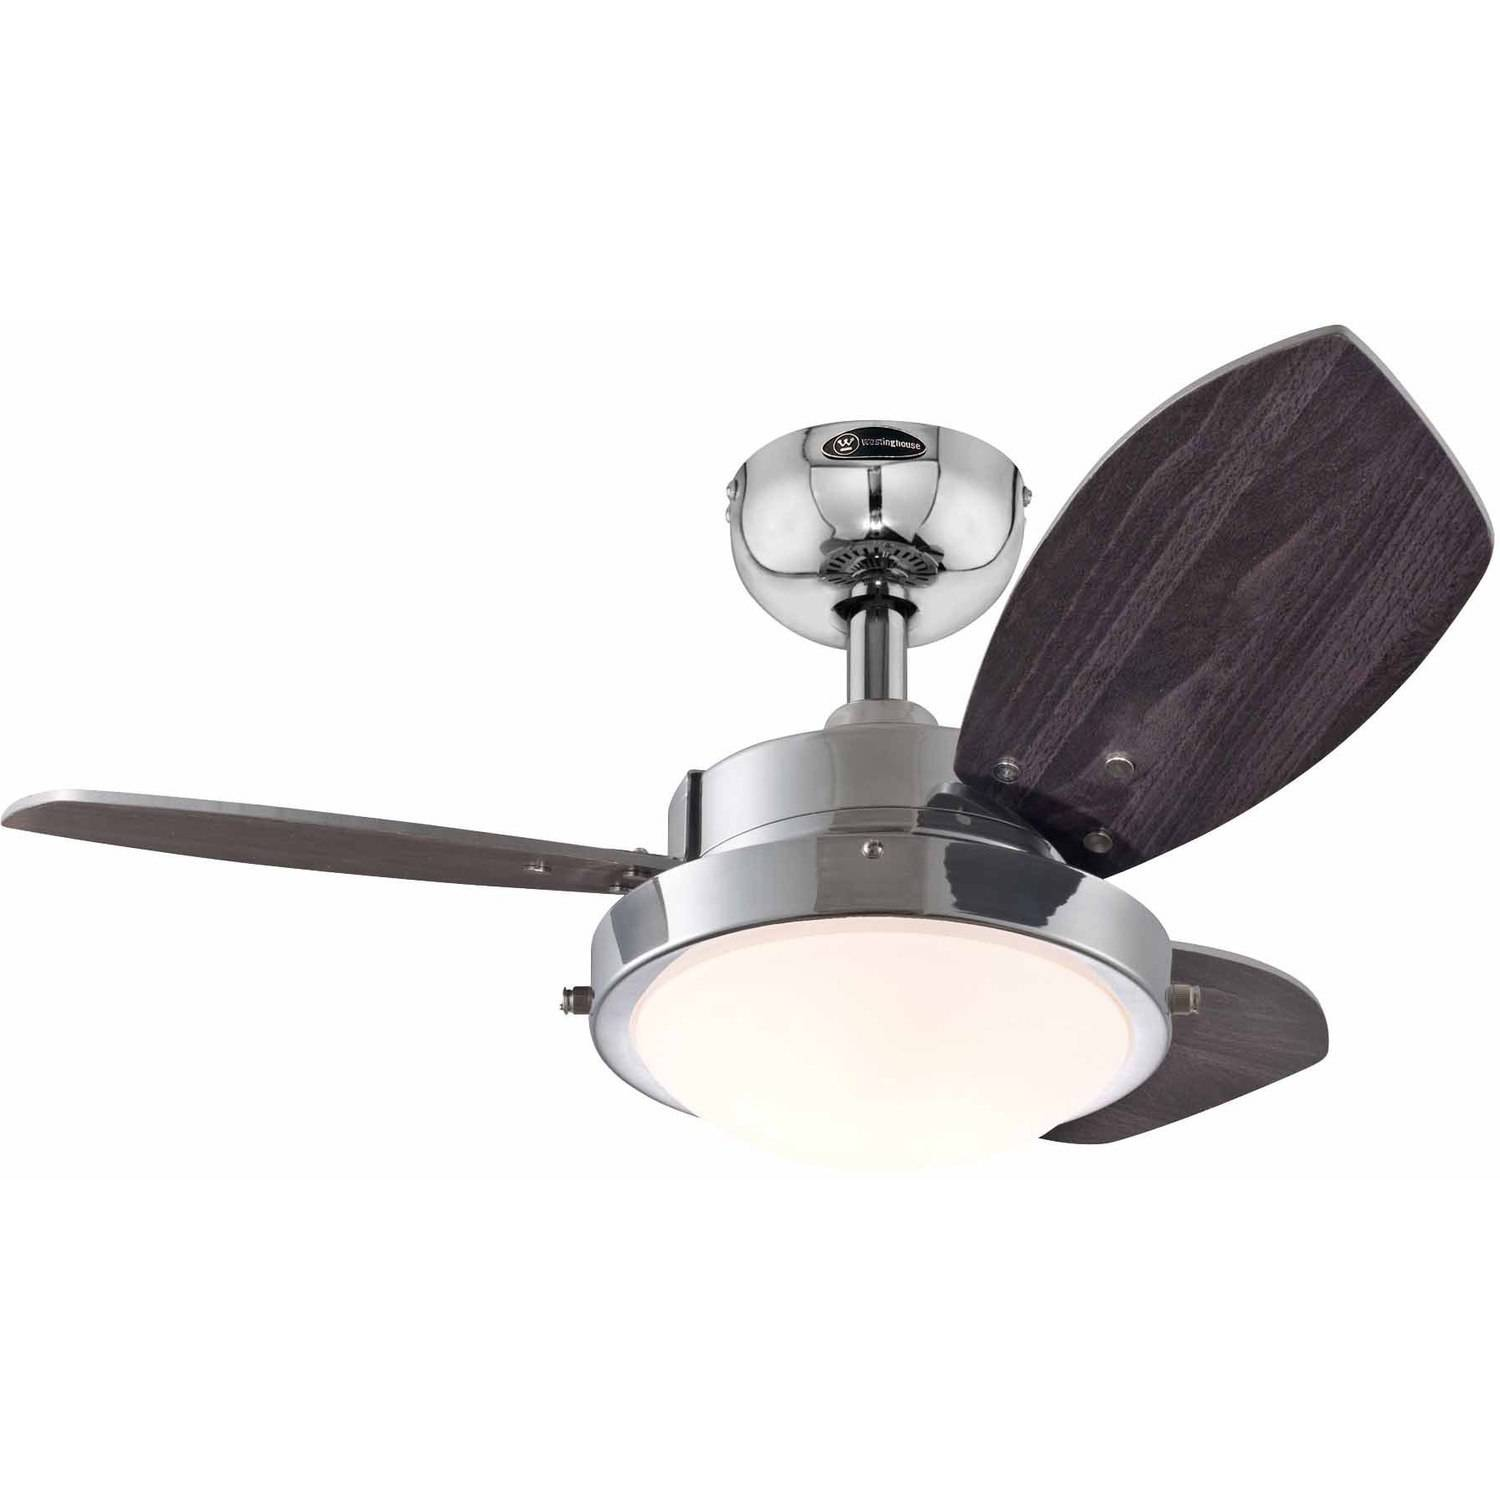 "Westinghouse 56"" White Industrial 3 Blade Indoor Ceiling Fan"